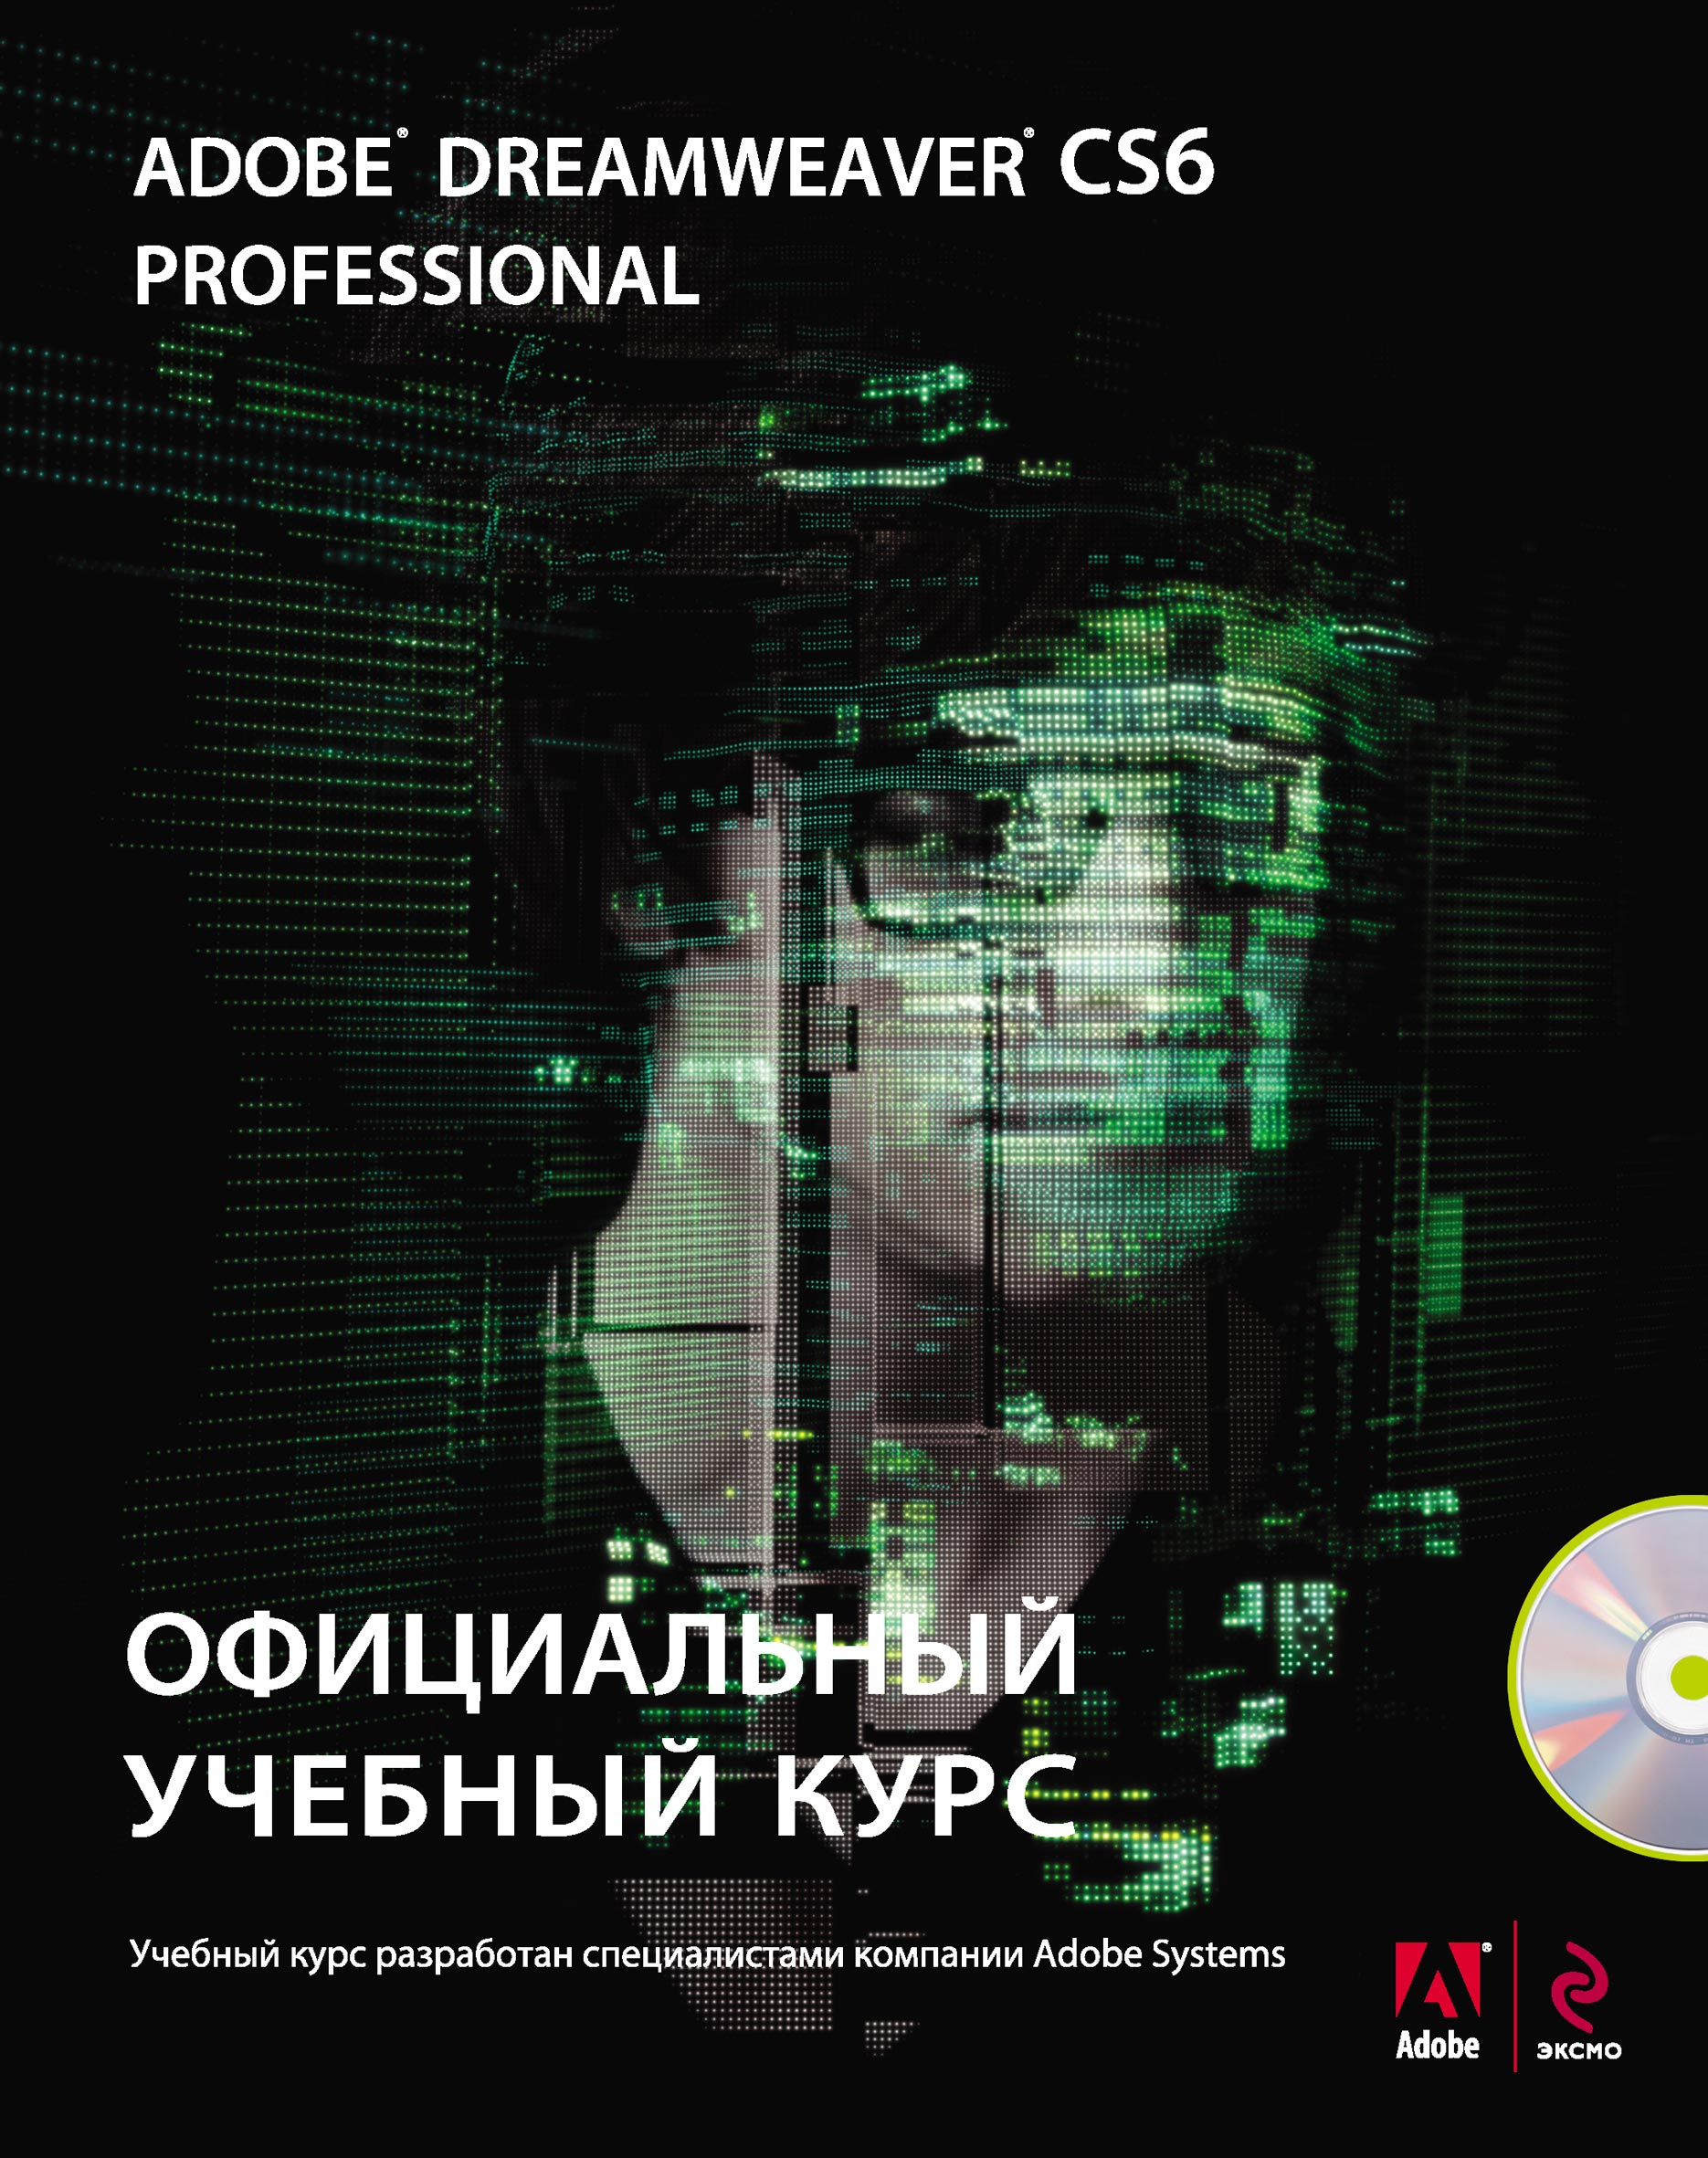 Коллектив авторов «Adobe Dreamweaver CS6»